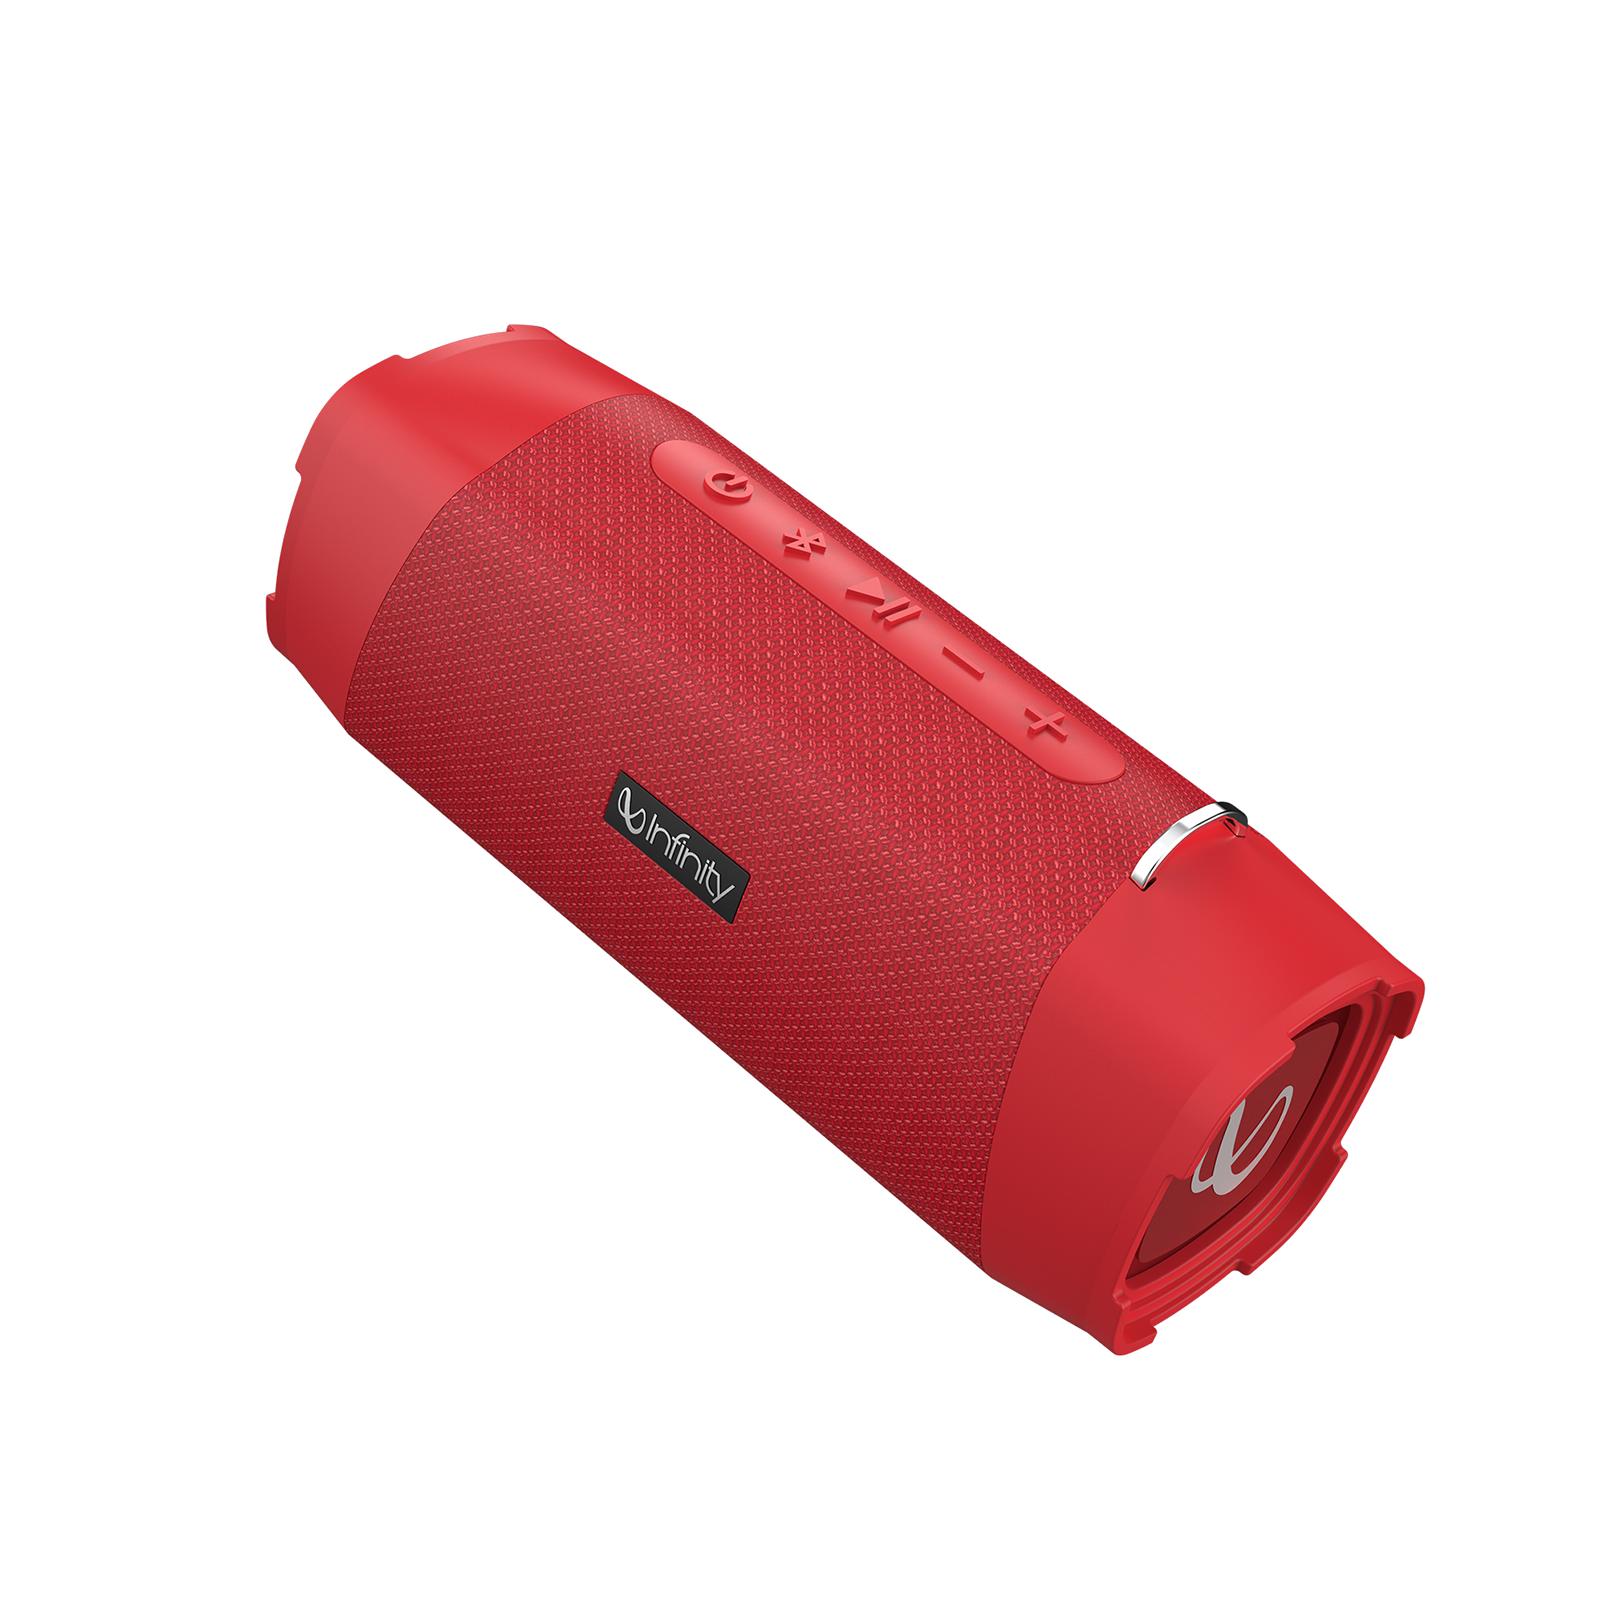 INFINITY FUZE 700 - Red - Portable Wireless Speakers - Back